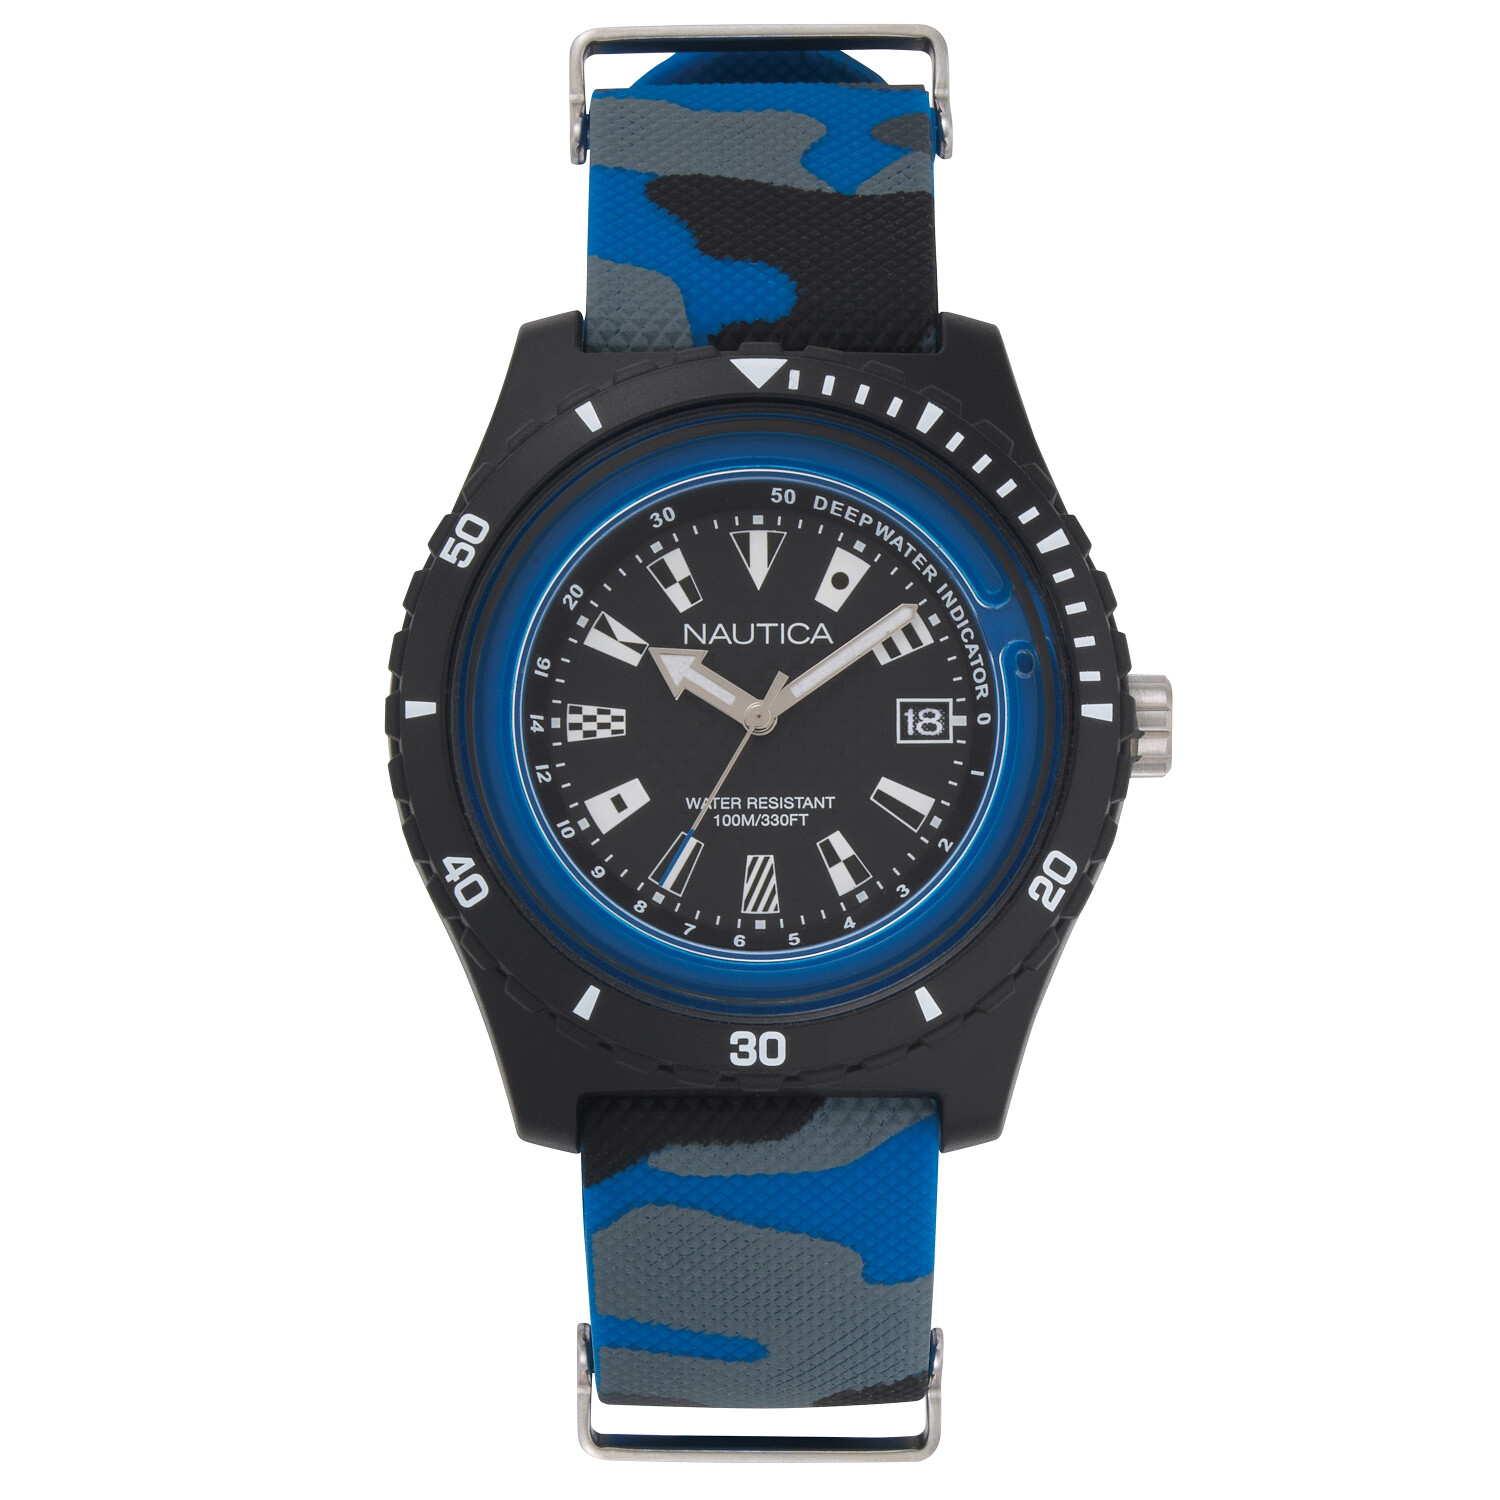 Nautica Watch NAPSRF009 Surfside, Analog, Water Resistant, Deep Water Indicator, Calendar, Signal Flag Indexes, Camo Silicone Strap, Black